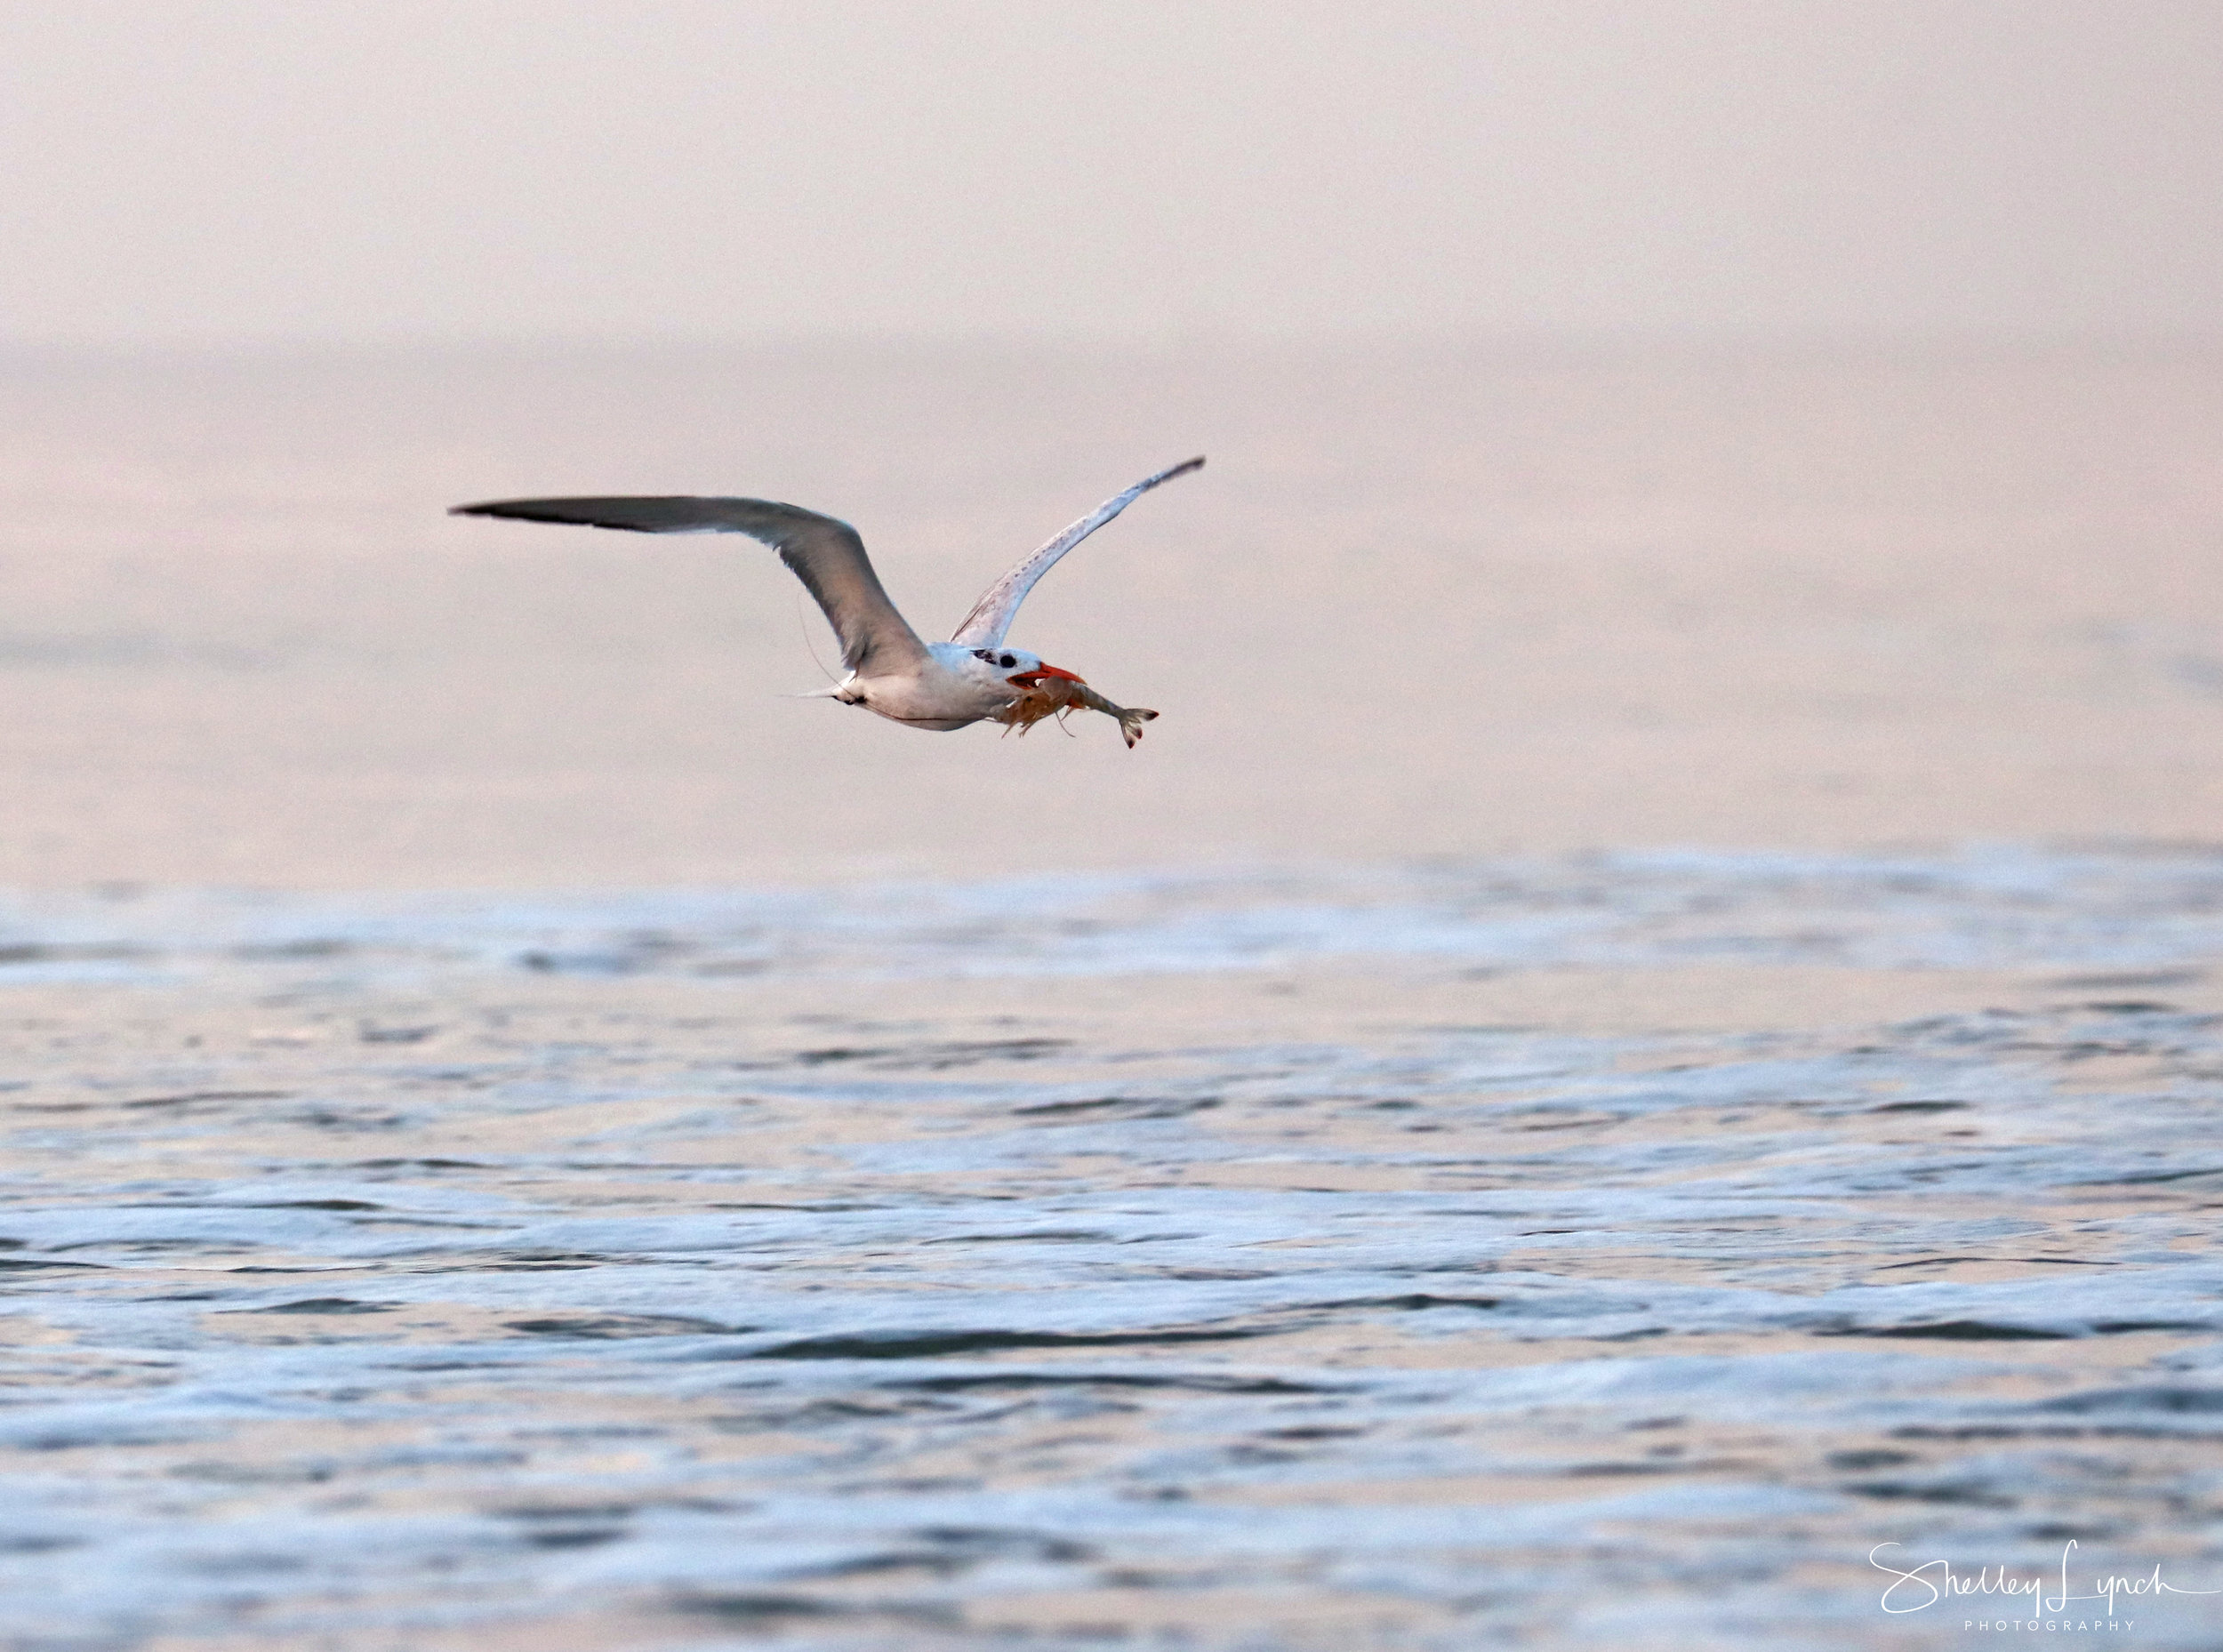 Royal Tern bringing us the shrimp message and breakfast